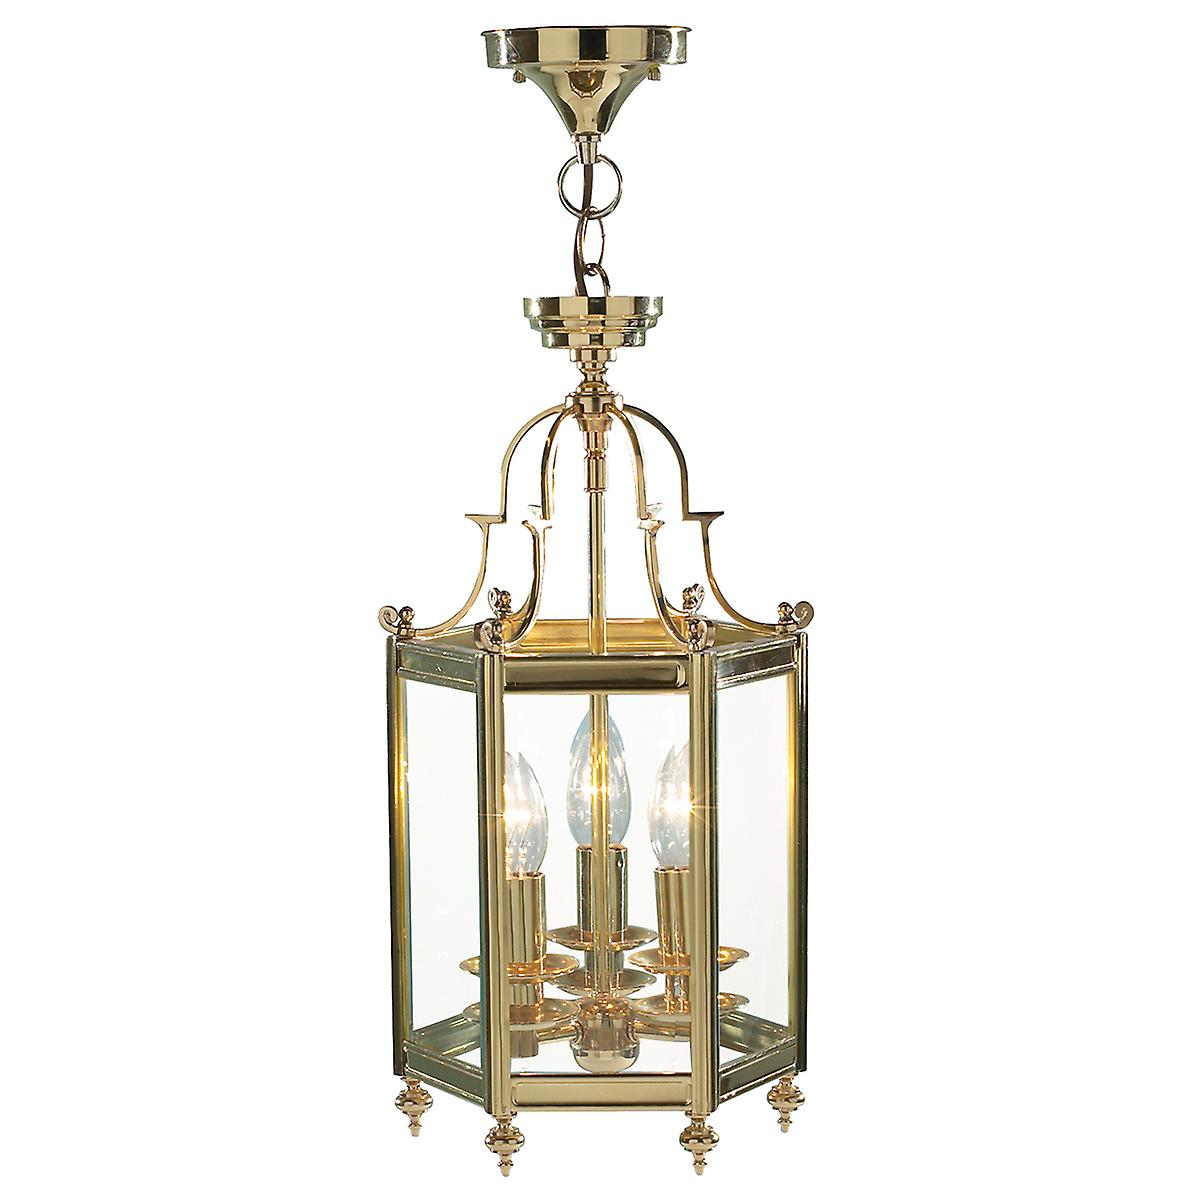 Dar MOO0340 Moorgate Hexagonal Hall Lantern Dual Mount Polished Brass